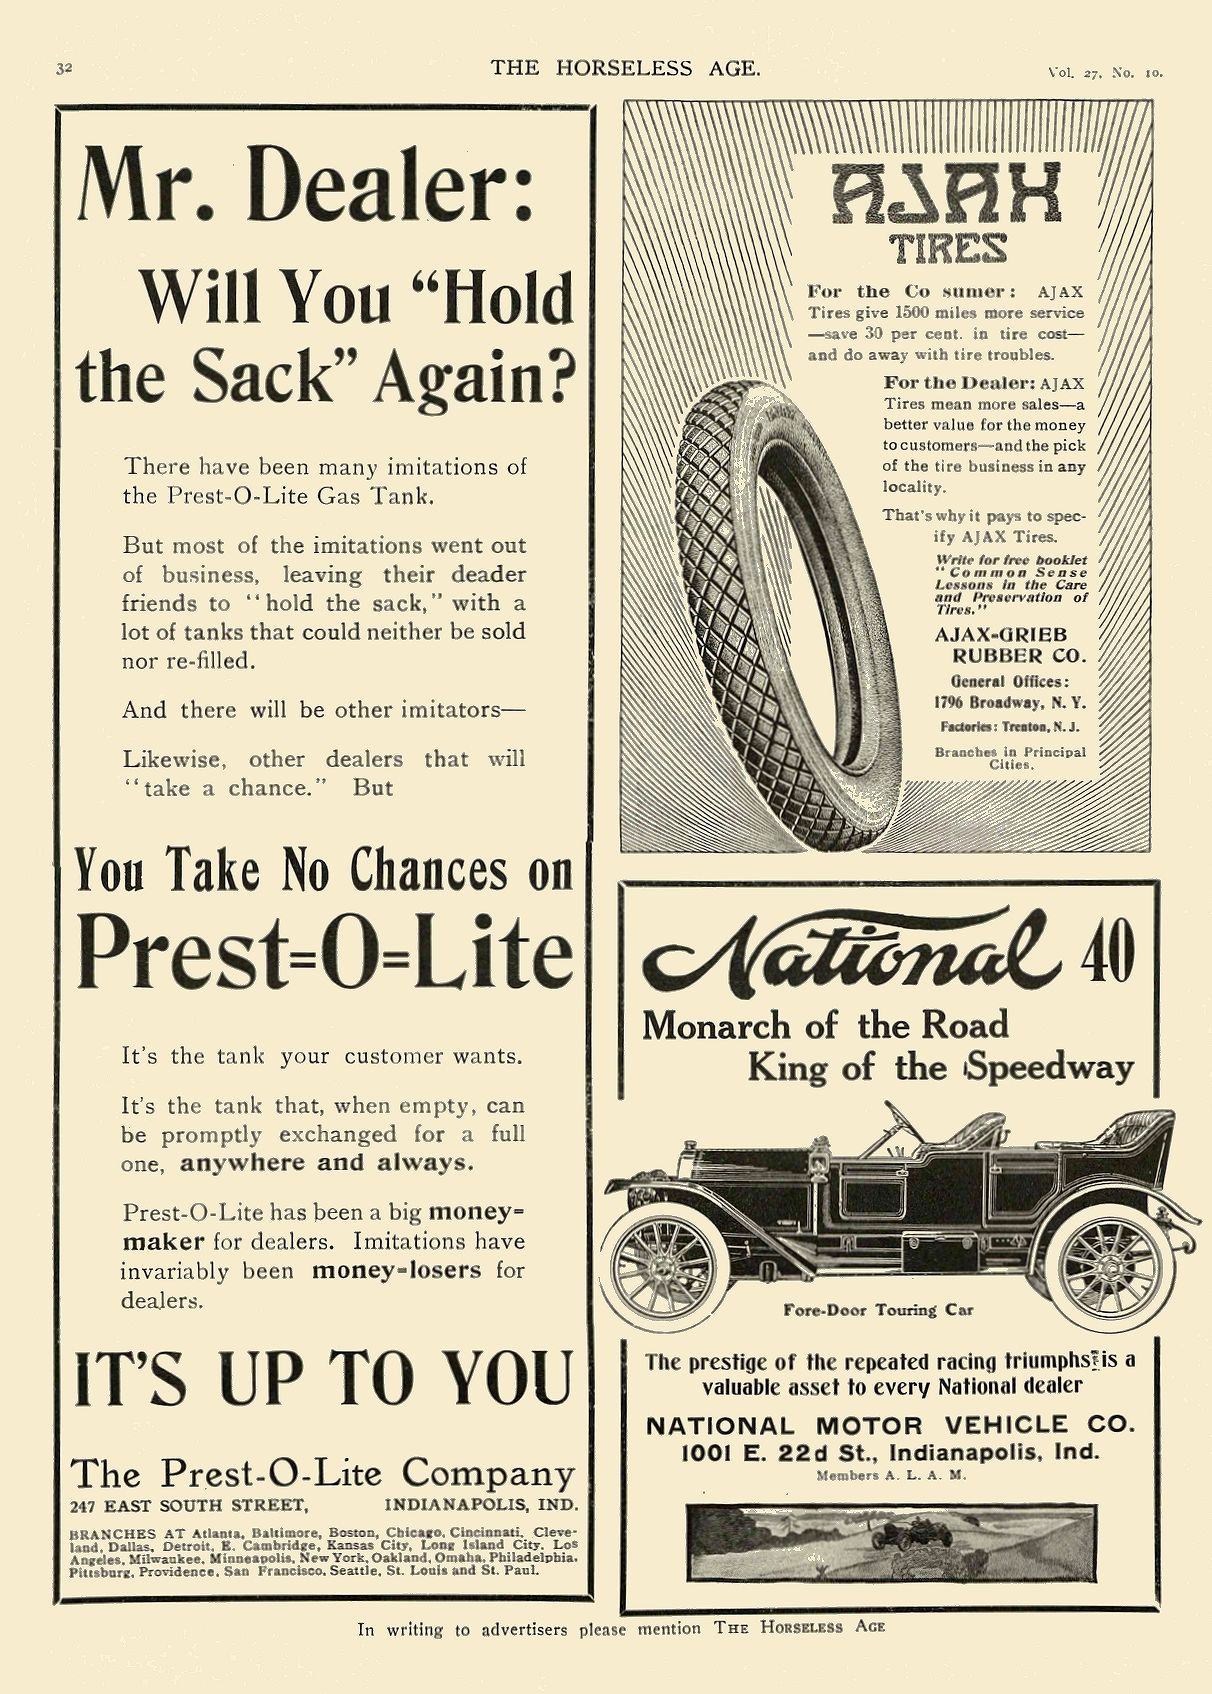 1911 3 8 NATIONAL 40 Monarch of the Road King of the Speedway NATIONAL MOTOR VEHICLE CO. Indianapolis, IND THE HORSELESS AGE March 8, 1911 8.5″x12″ page 32